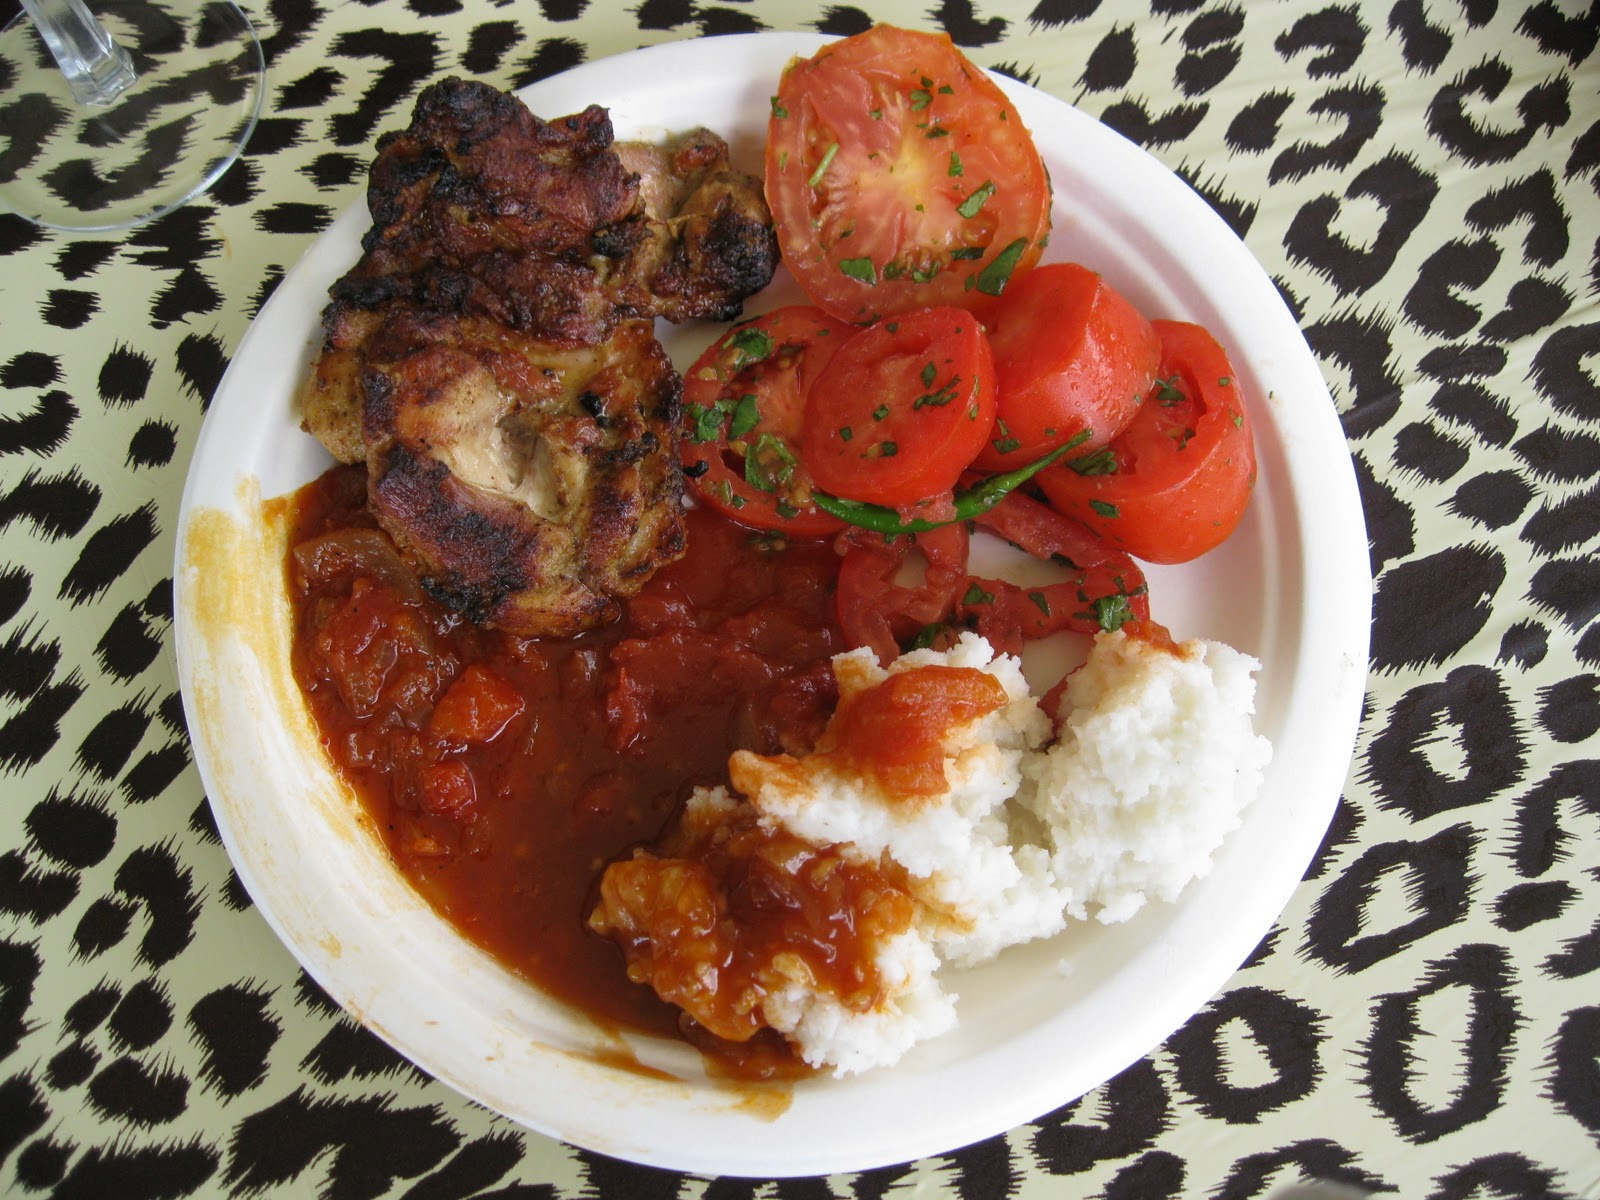 Grayhaven South African Food And Wine Festival